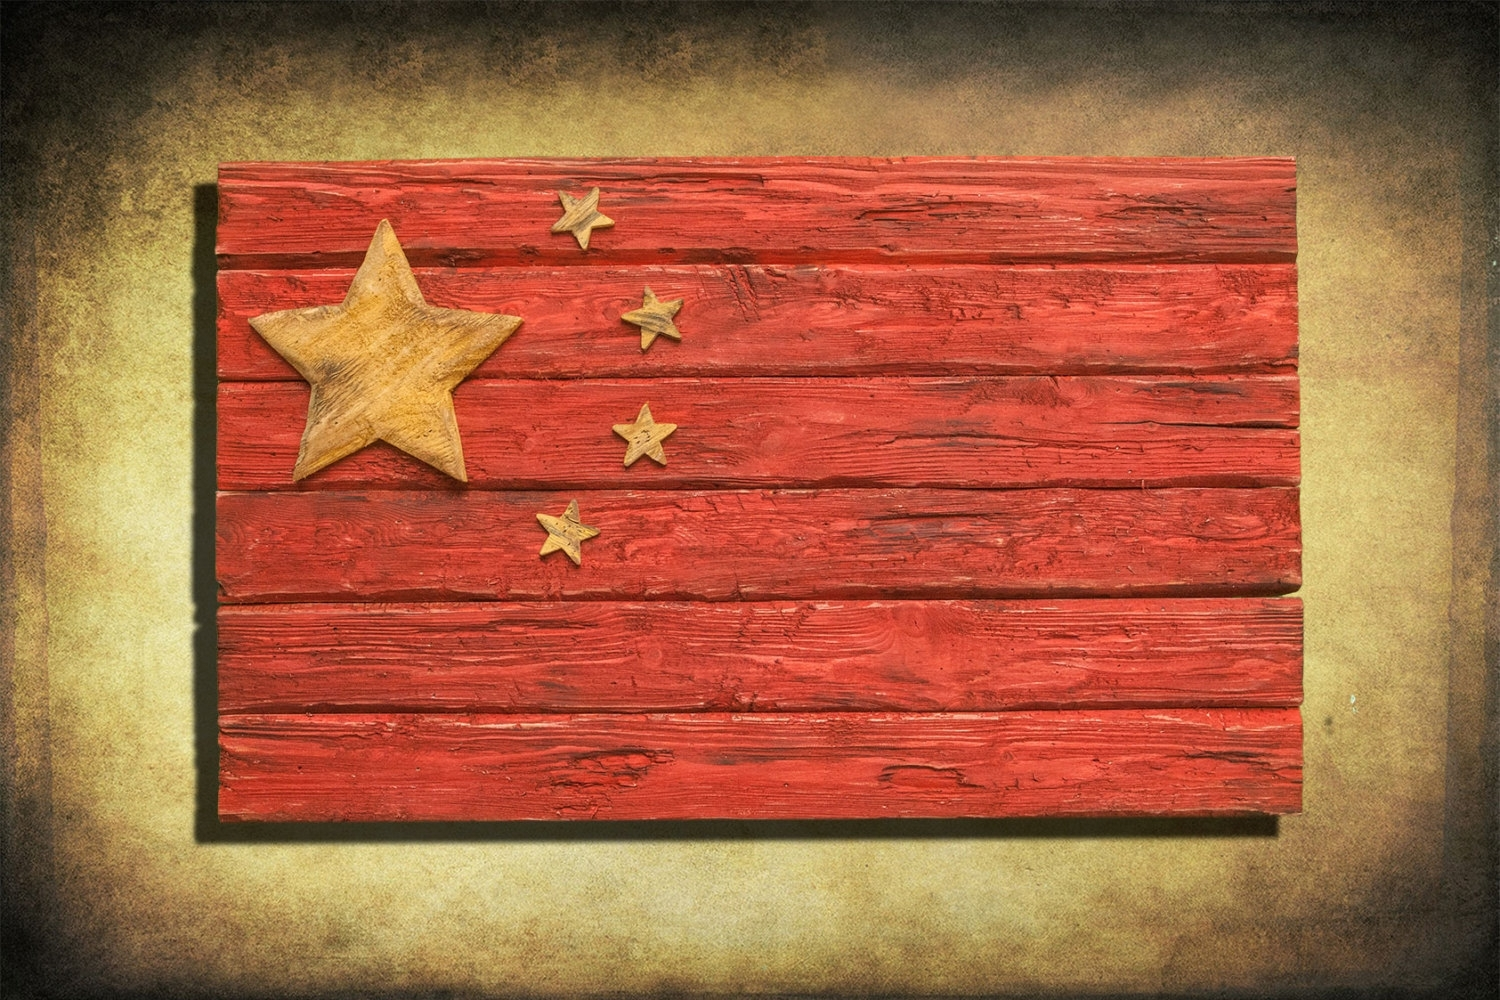 Handmade, Distressed Wooden Chinese Flag, Vintage, Art, Distressed Regarding Best And Newest Chinese Wall Art (Gallery 14 of 20)